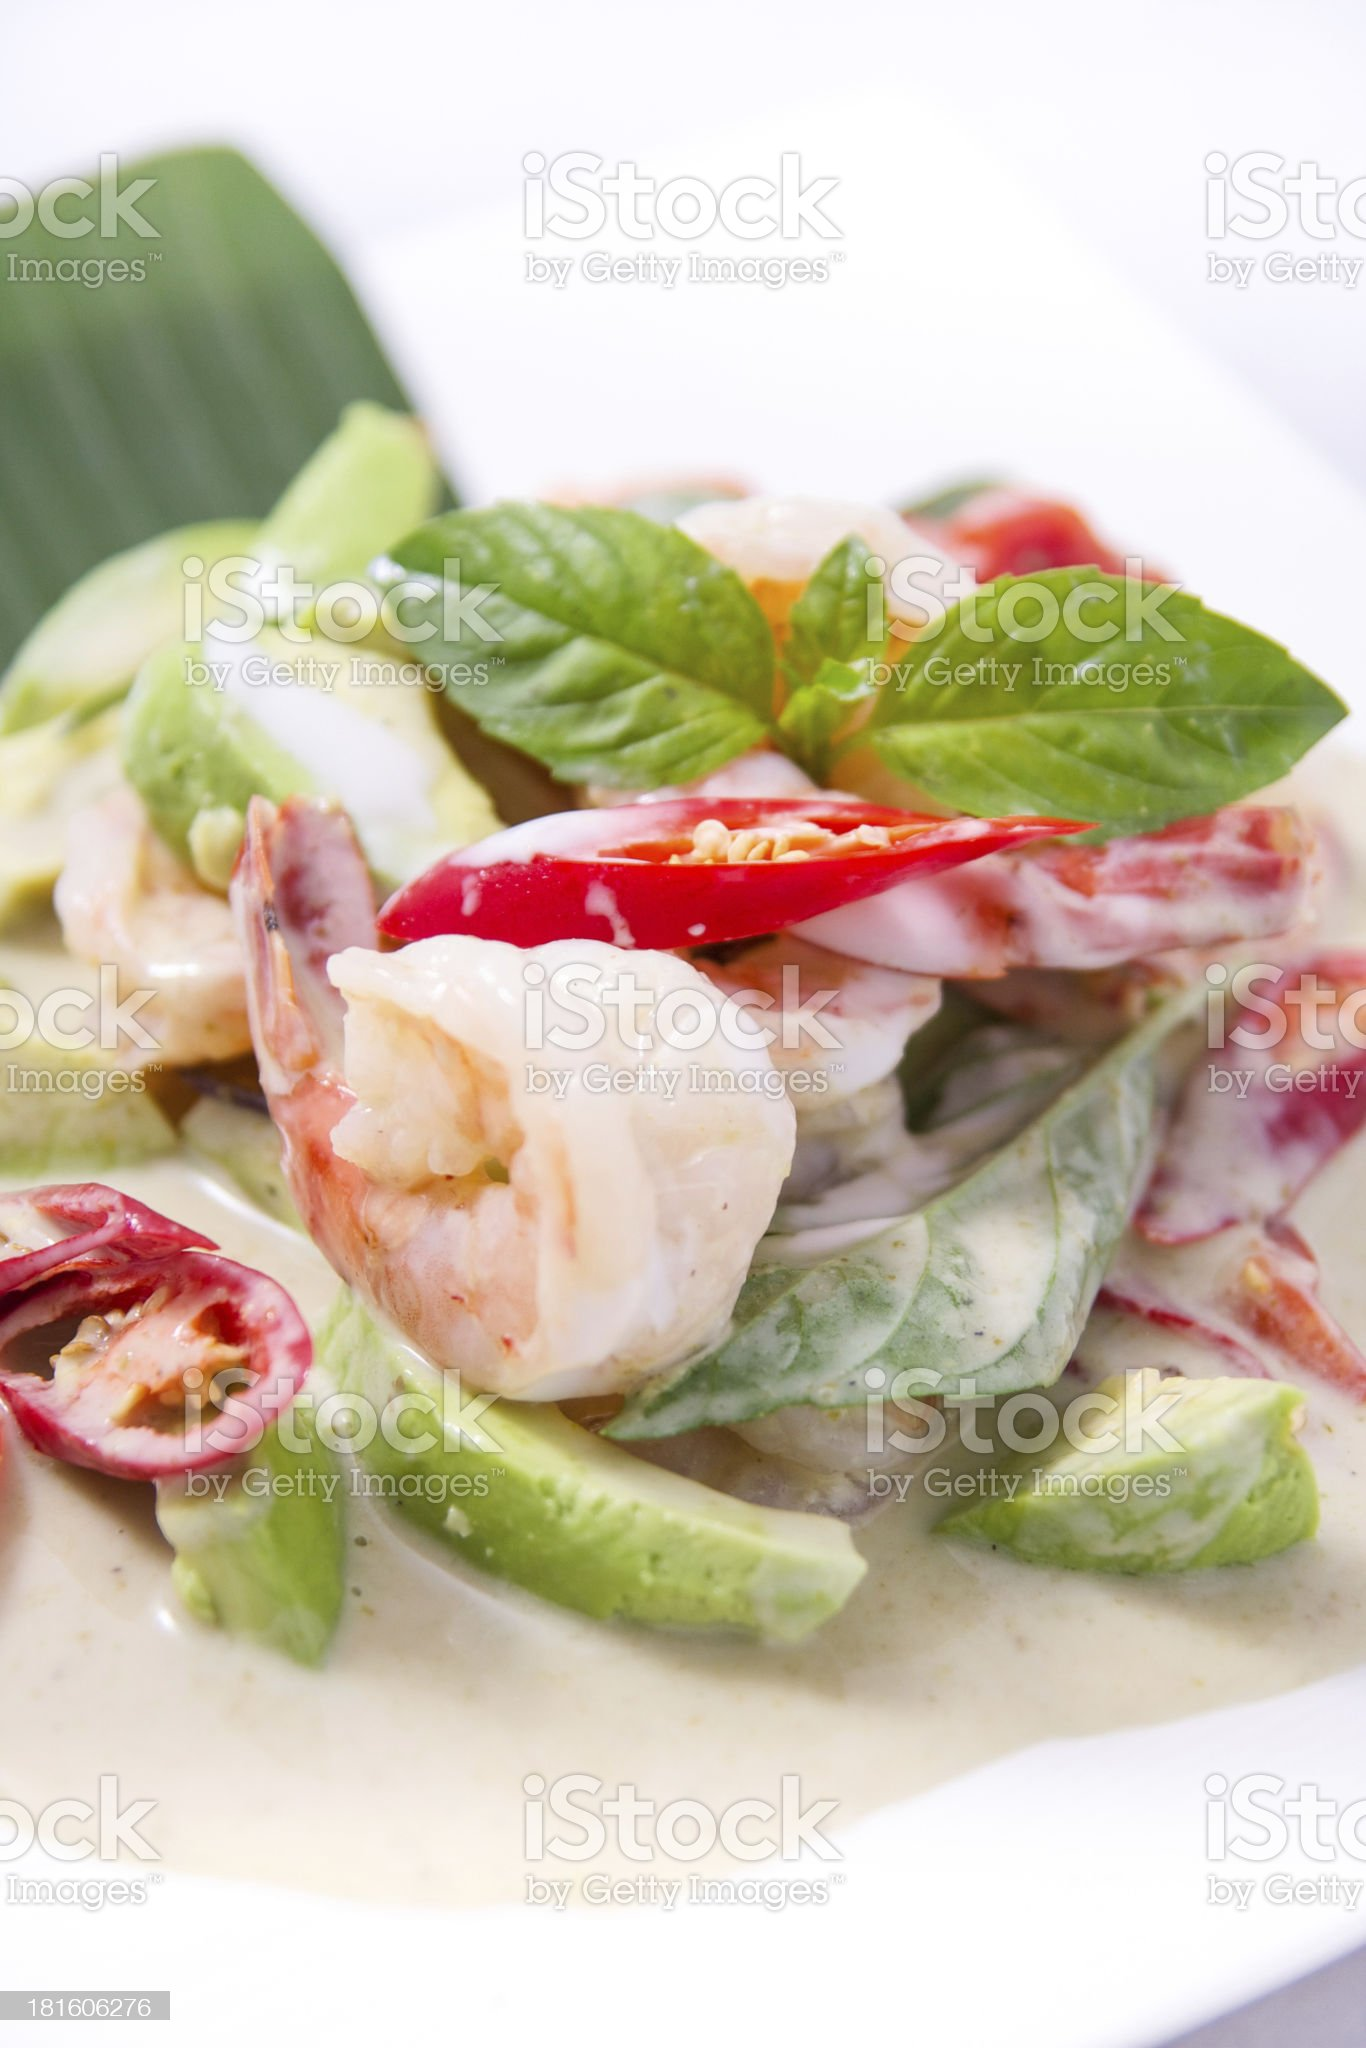 Thai green curry with prawn and avocado. royalty-free stock photo